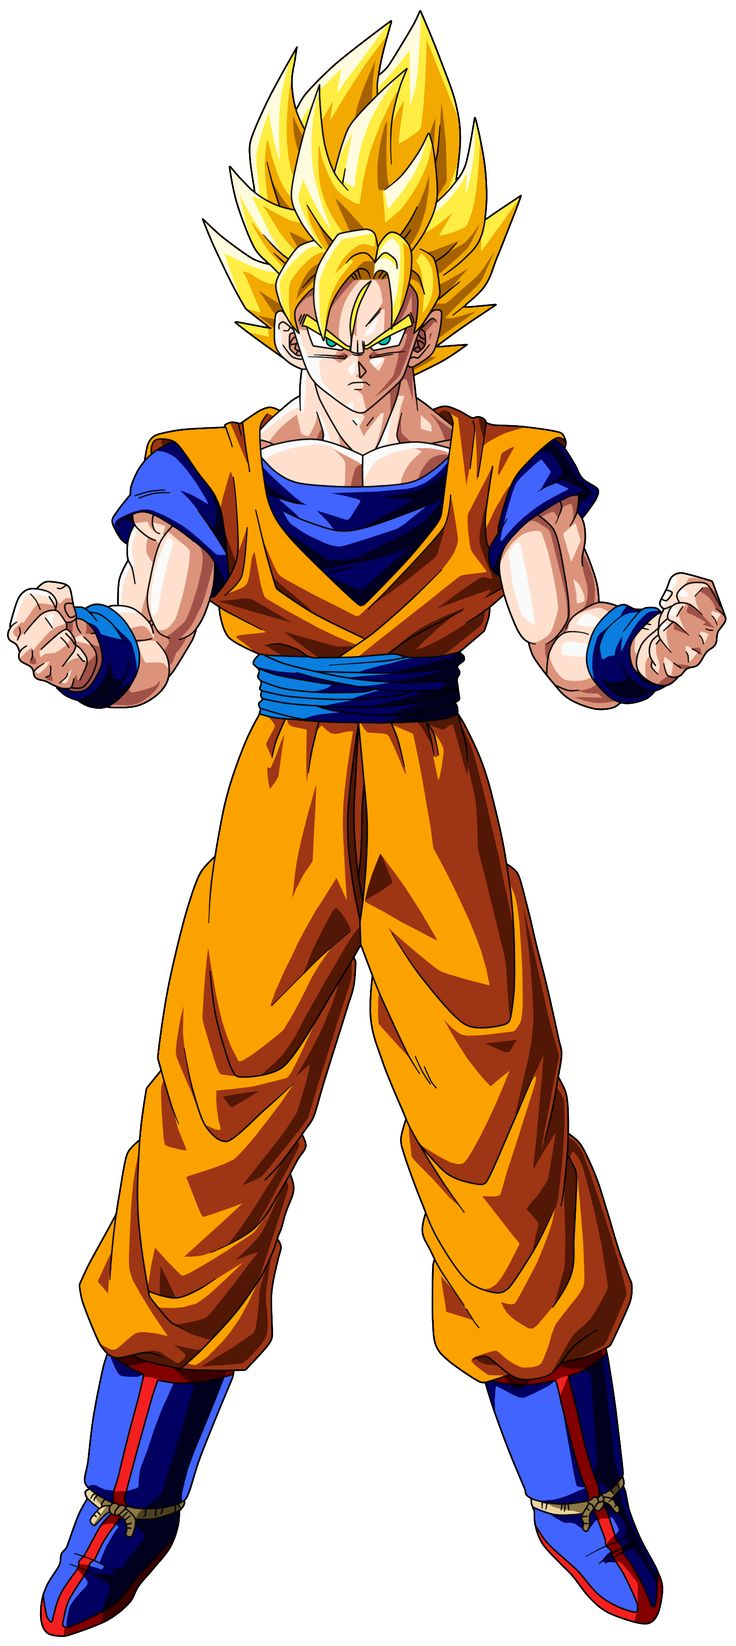 super saiyan 1 goku - Google Search | Anime | Pinterest ...